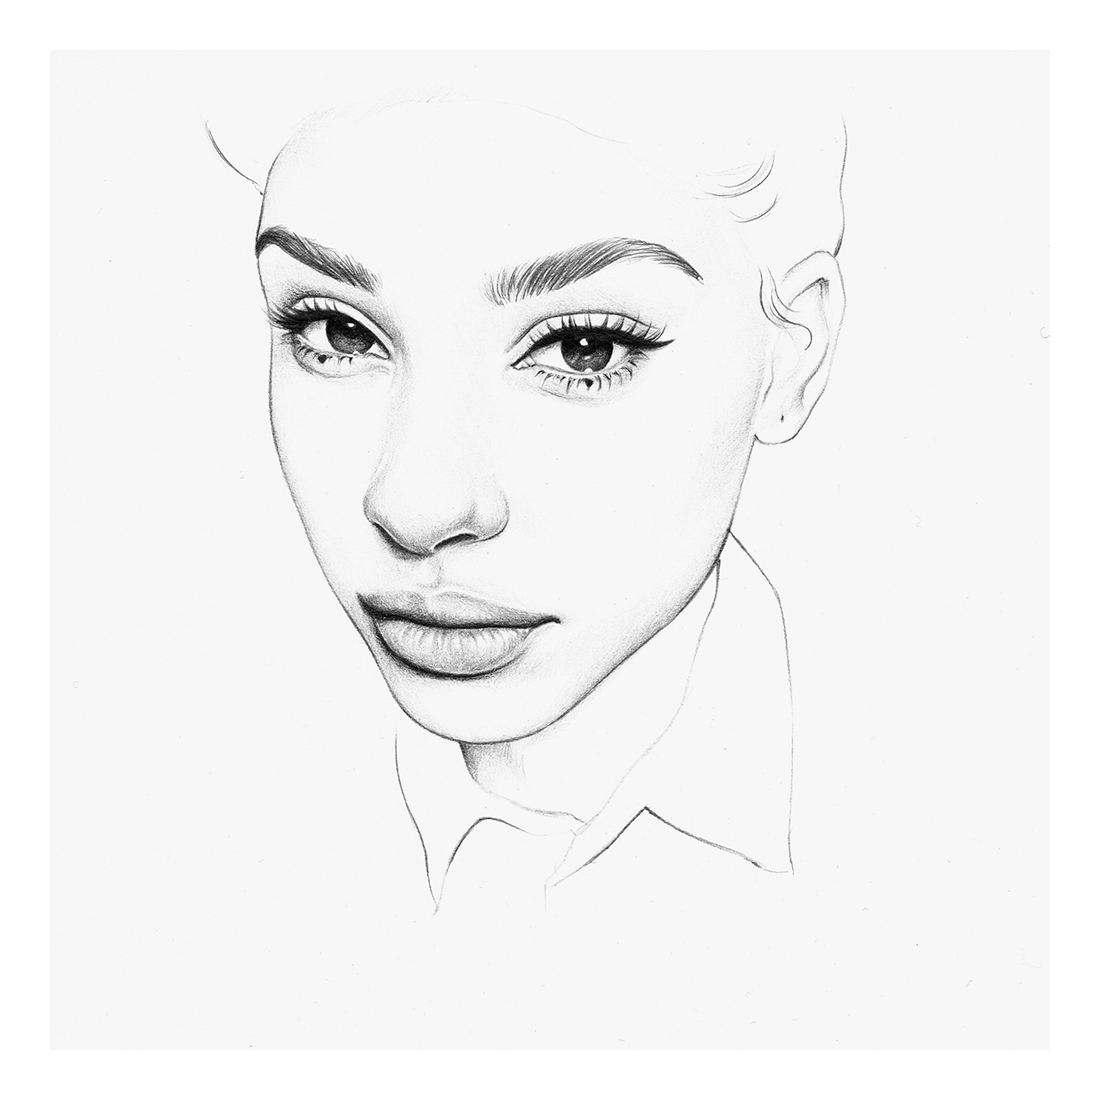 15-TS-Abe-Drawings-of-Minimalist-Hyper-Realistic-Portraits-www-designstack-co